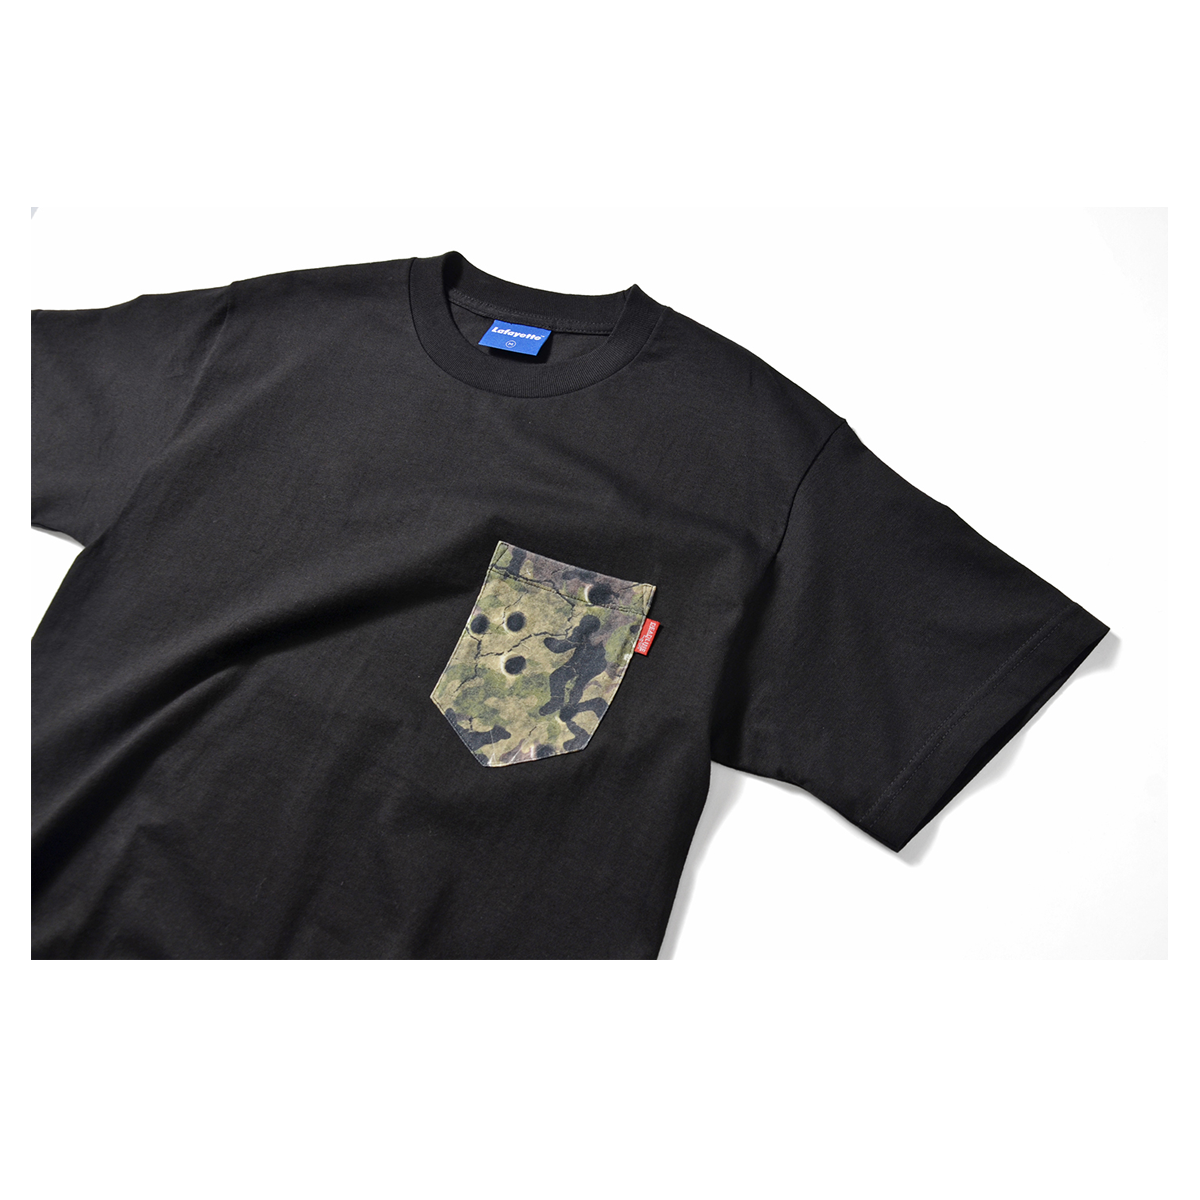 Lafayette x Deadline Chalk Line Camo Pocket Tee (Black)